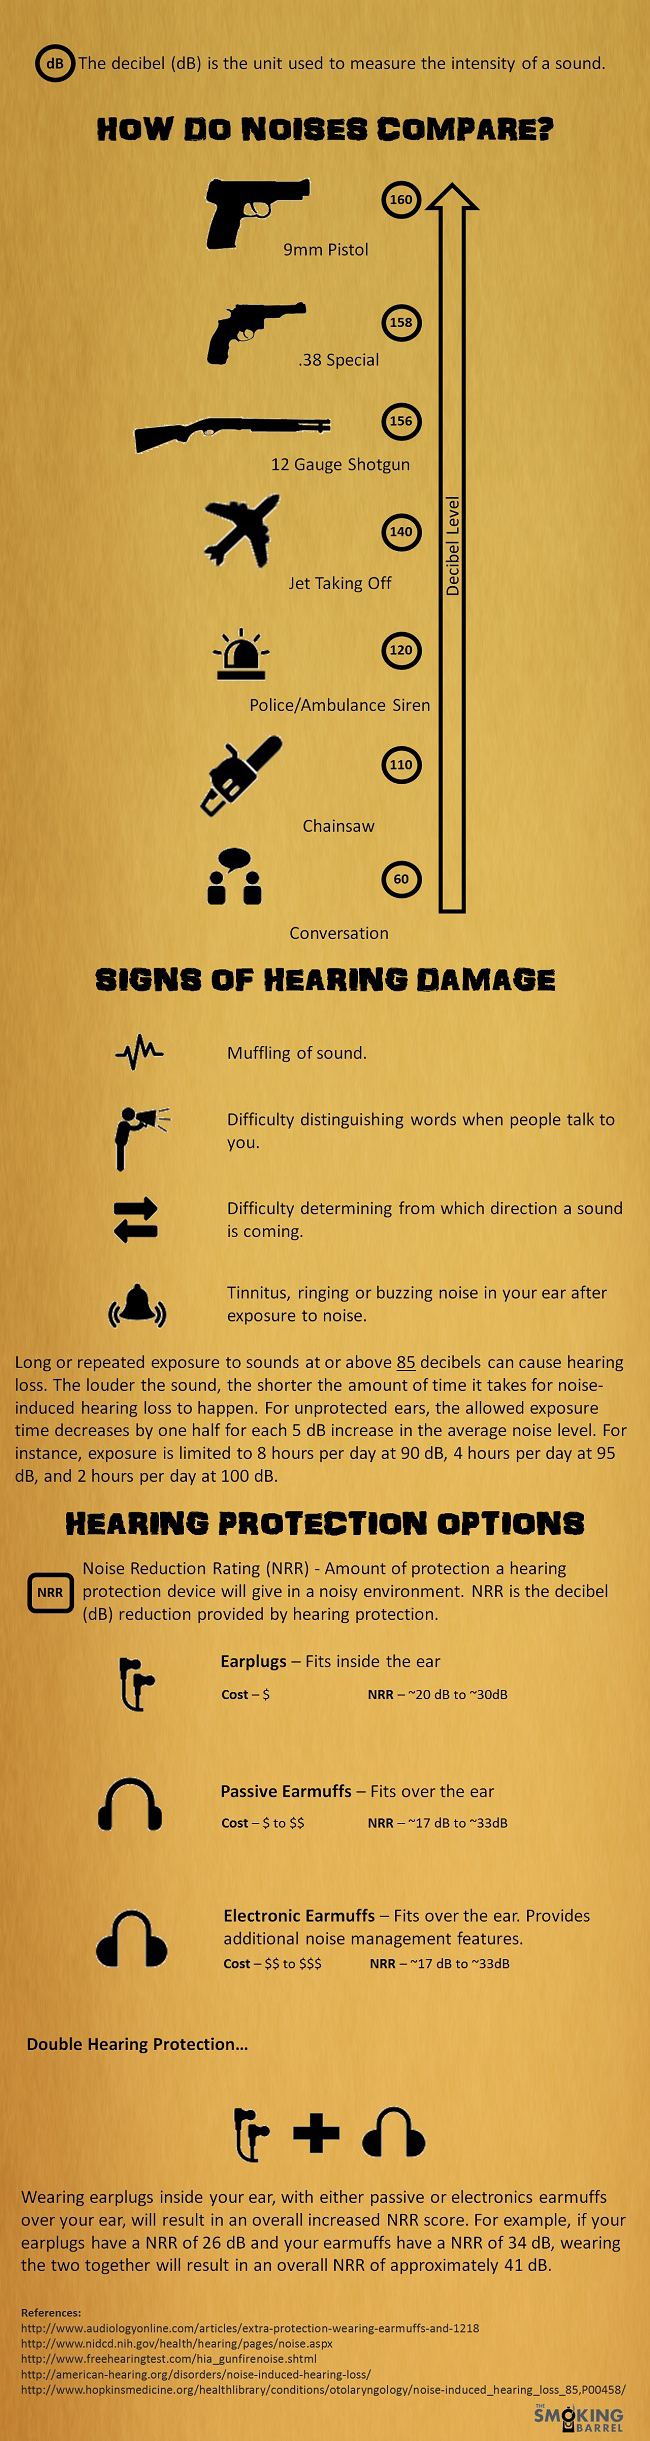 how shooting affects hearing